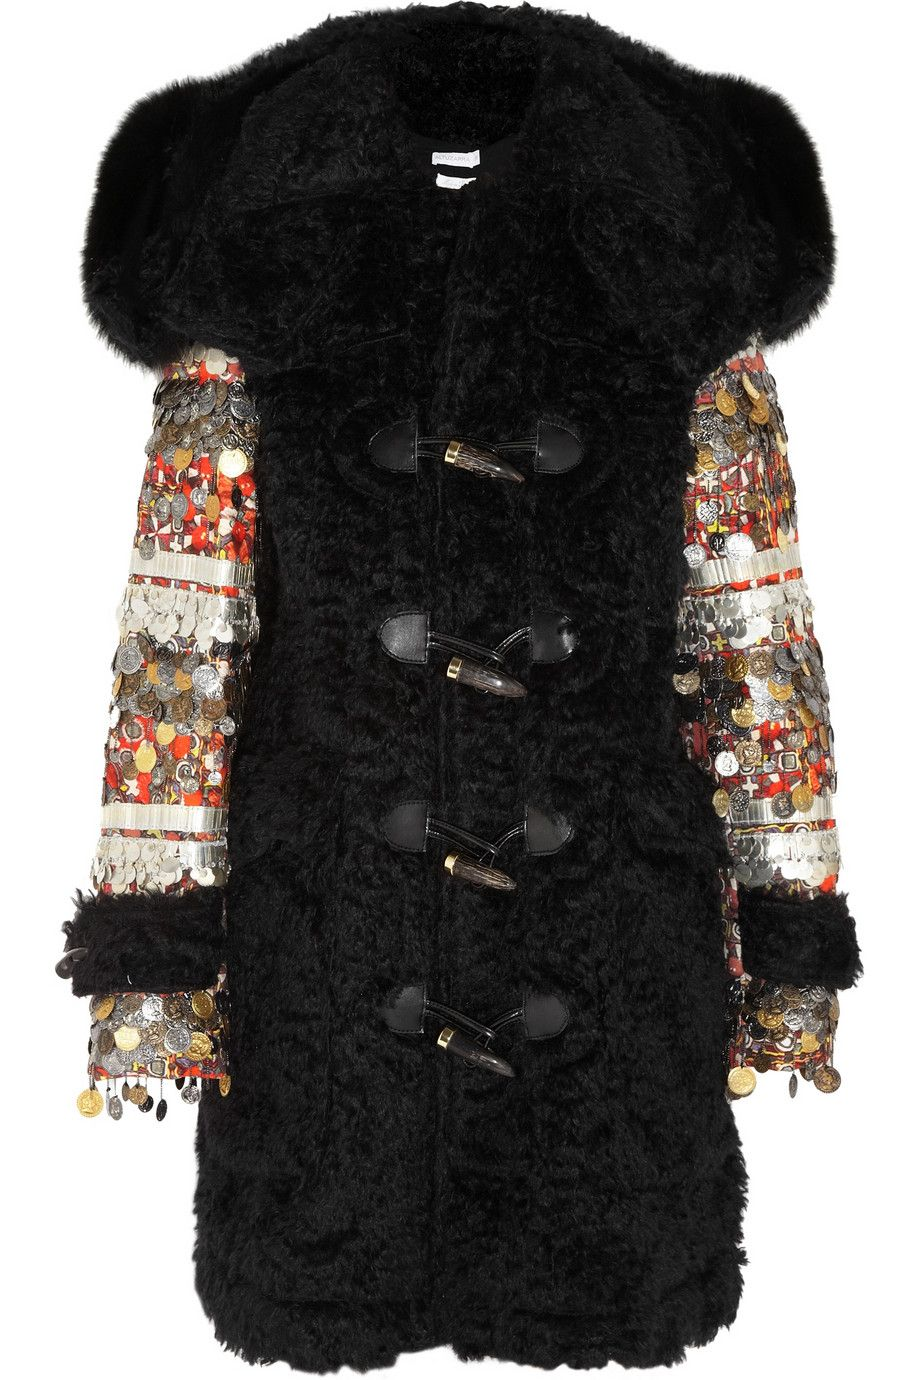 Holidays for me = fabulous coats... And this coat from Altuzarra is to die for.